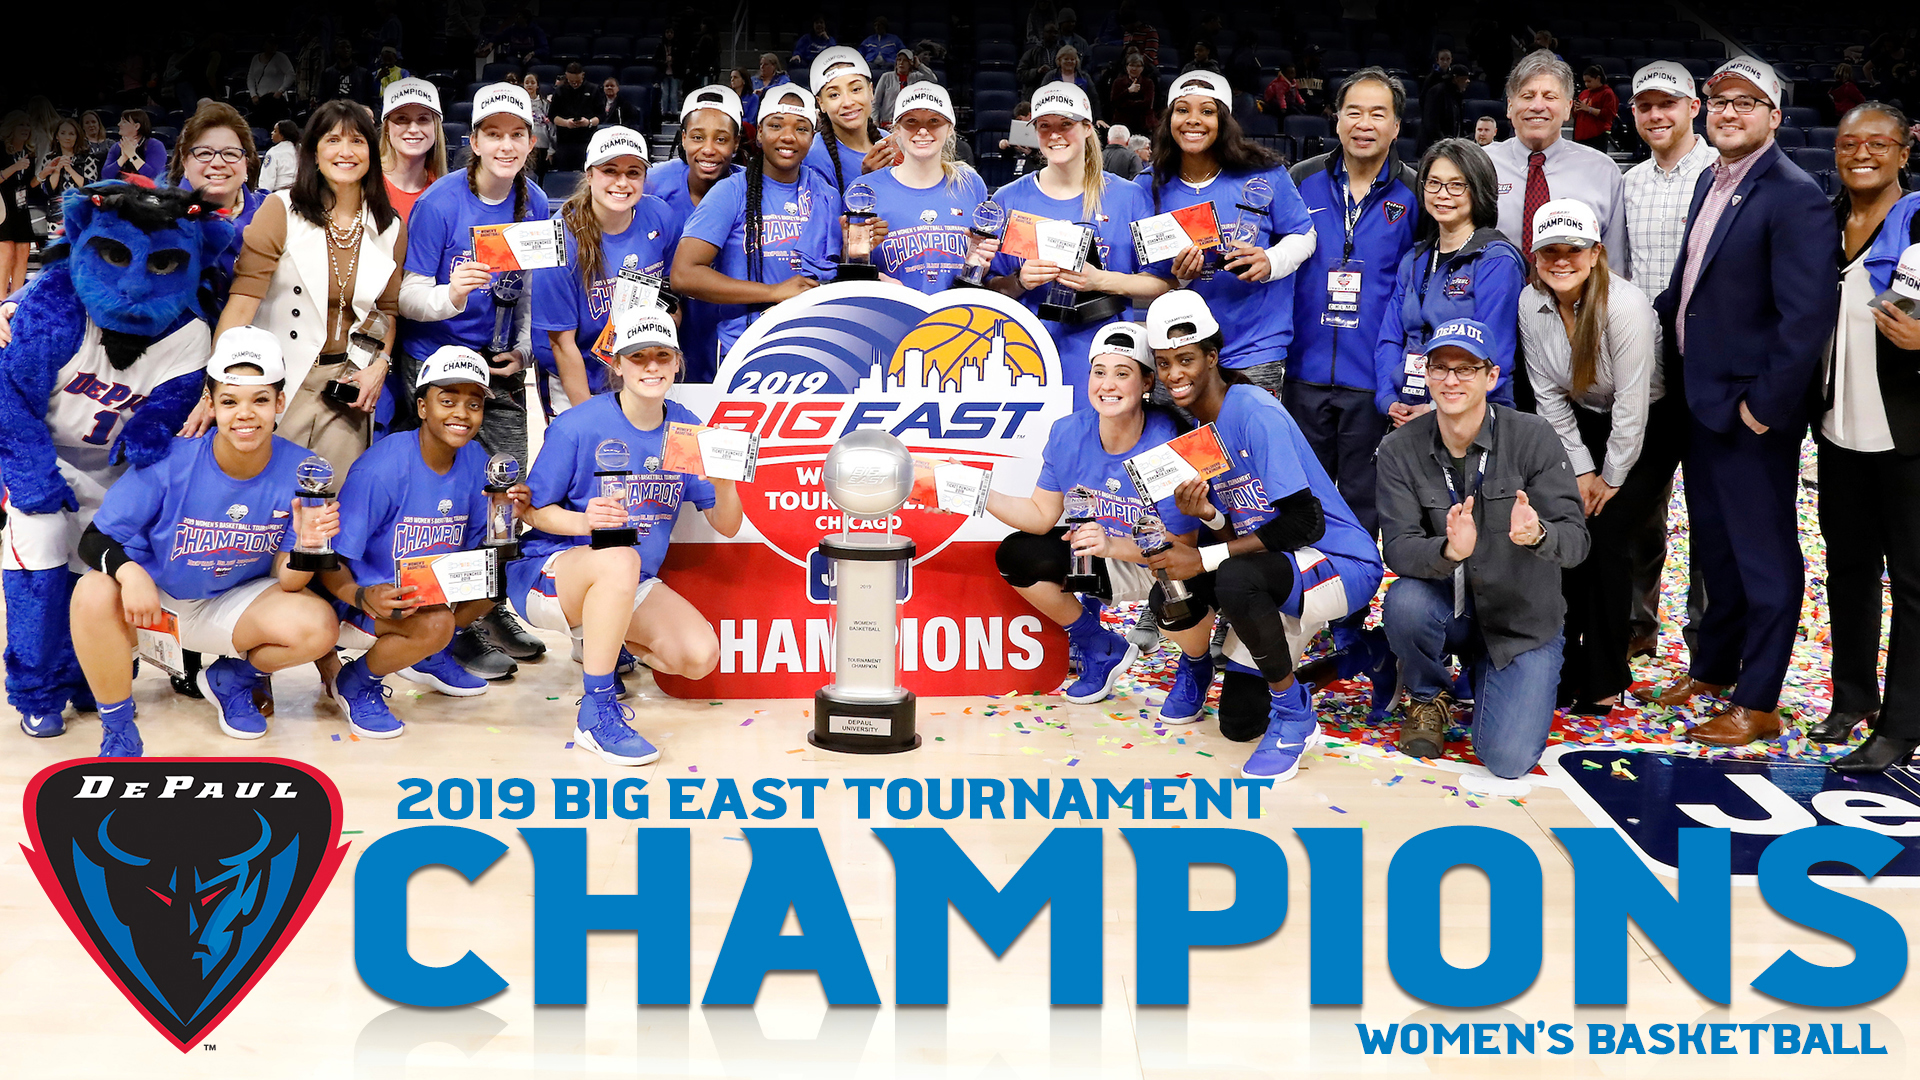 DePaul Women's Basketball BIG EAST champions 2019